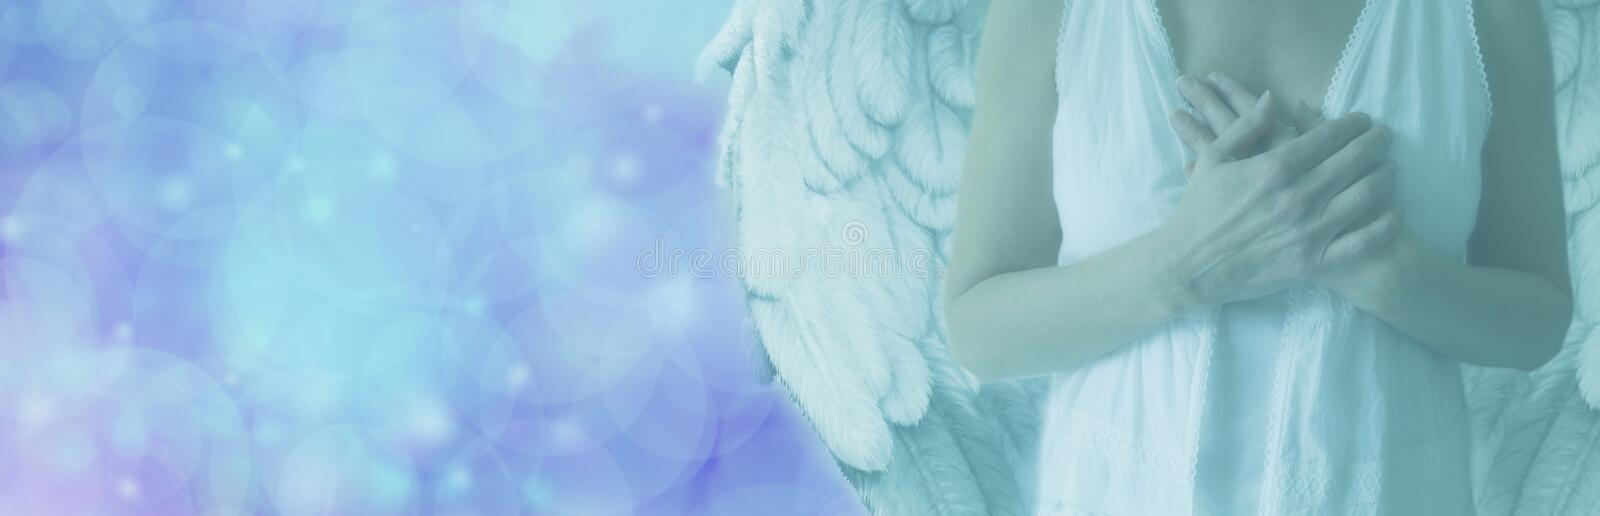 Angel on Blue Bokeh light banner. Cropped Angel showing torso in white robes with hands held over heart on a misty blue bokeh background with copy space on left royalty free illustration